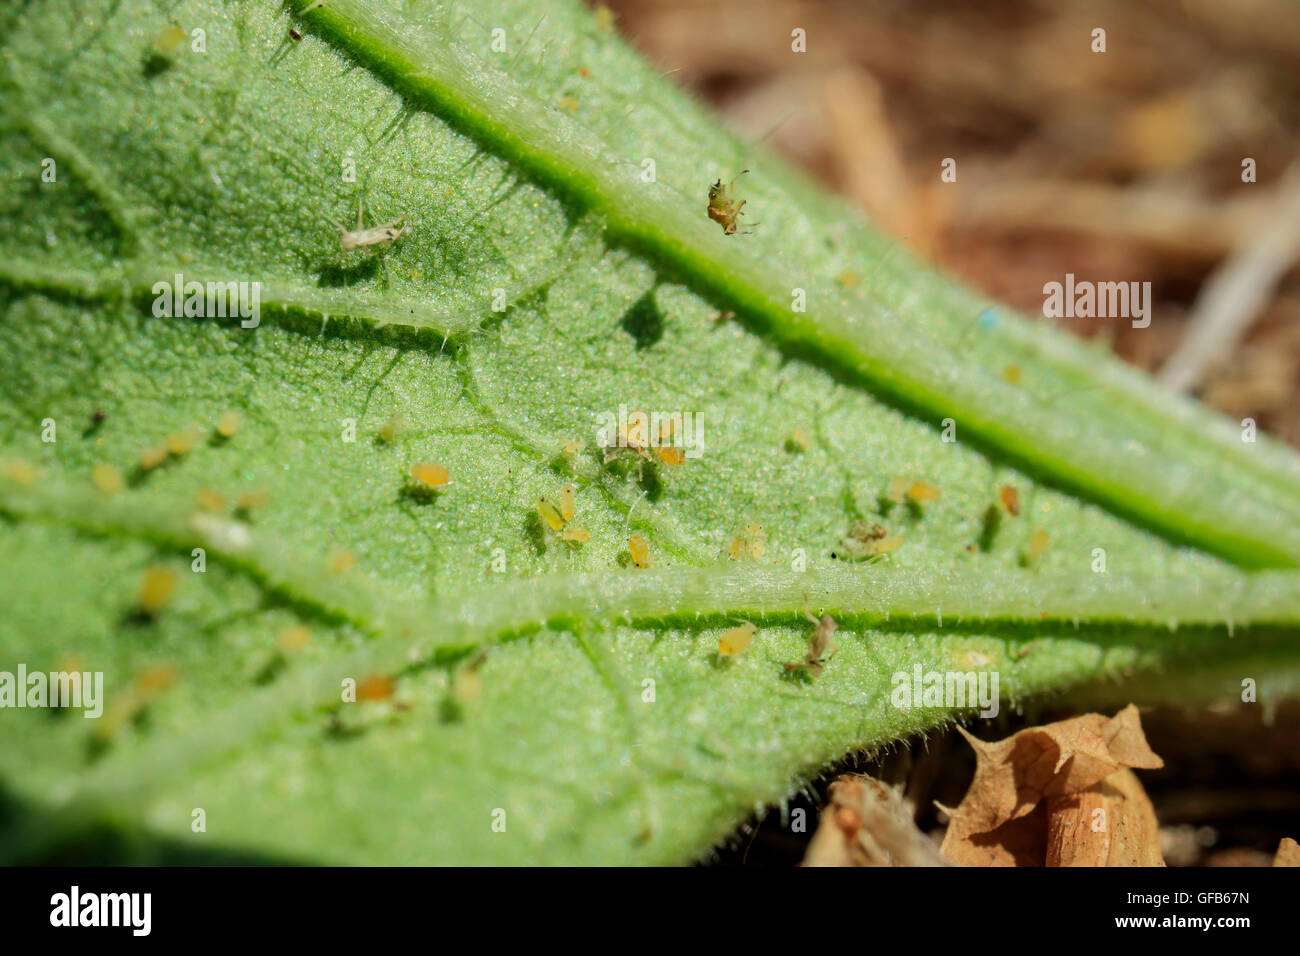 Pests - Aphid on the Kale, harming the plant - Stock Image